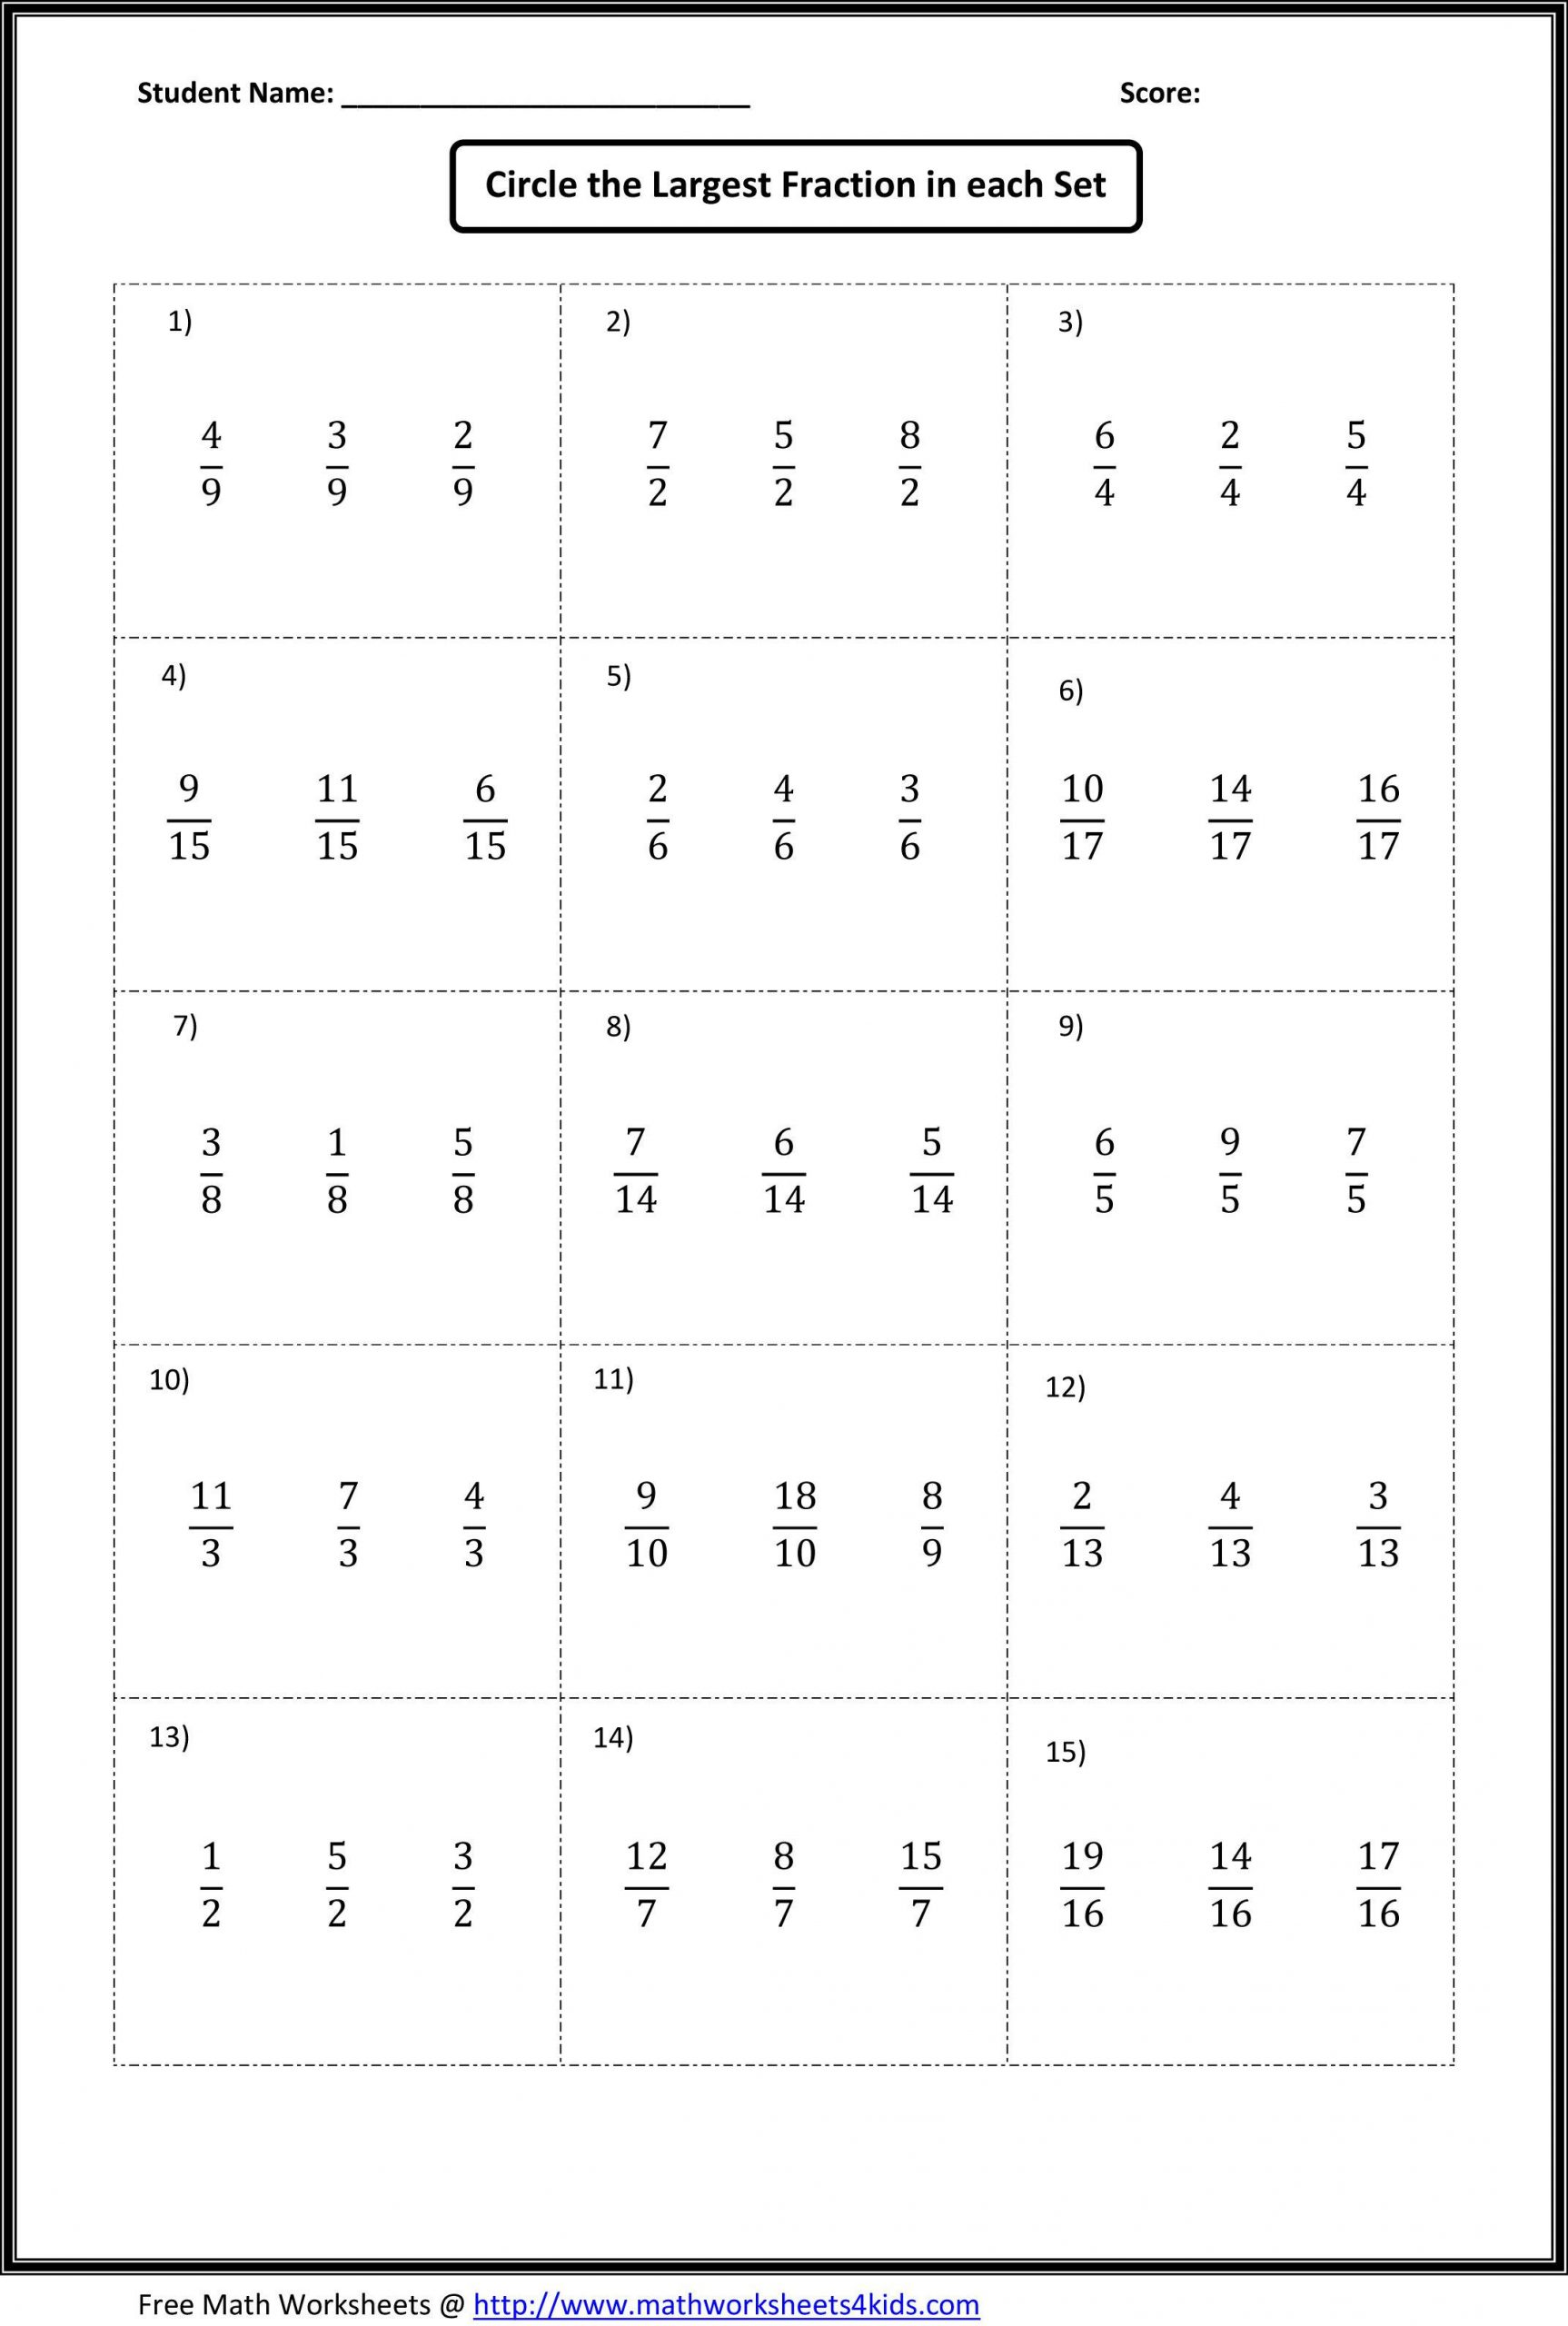 Equivalent Fractions Worksheets 5th Grade Paring Fractions Worksheets Find Out which Fraction is